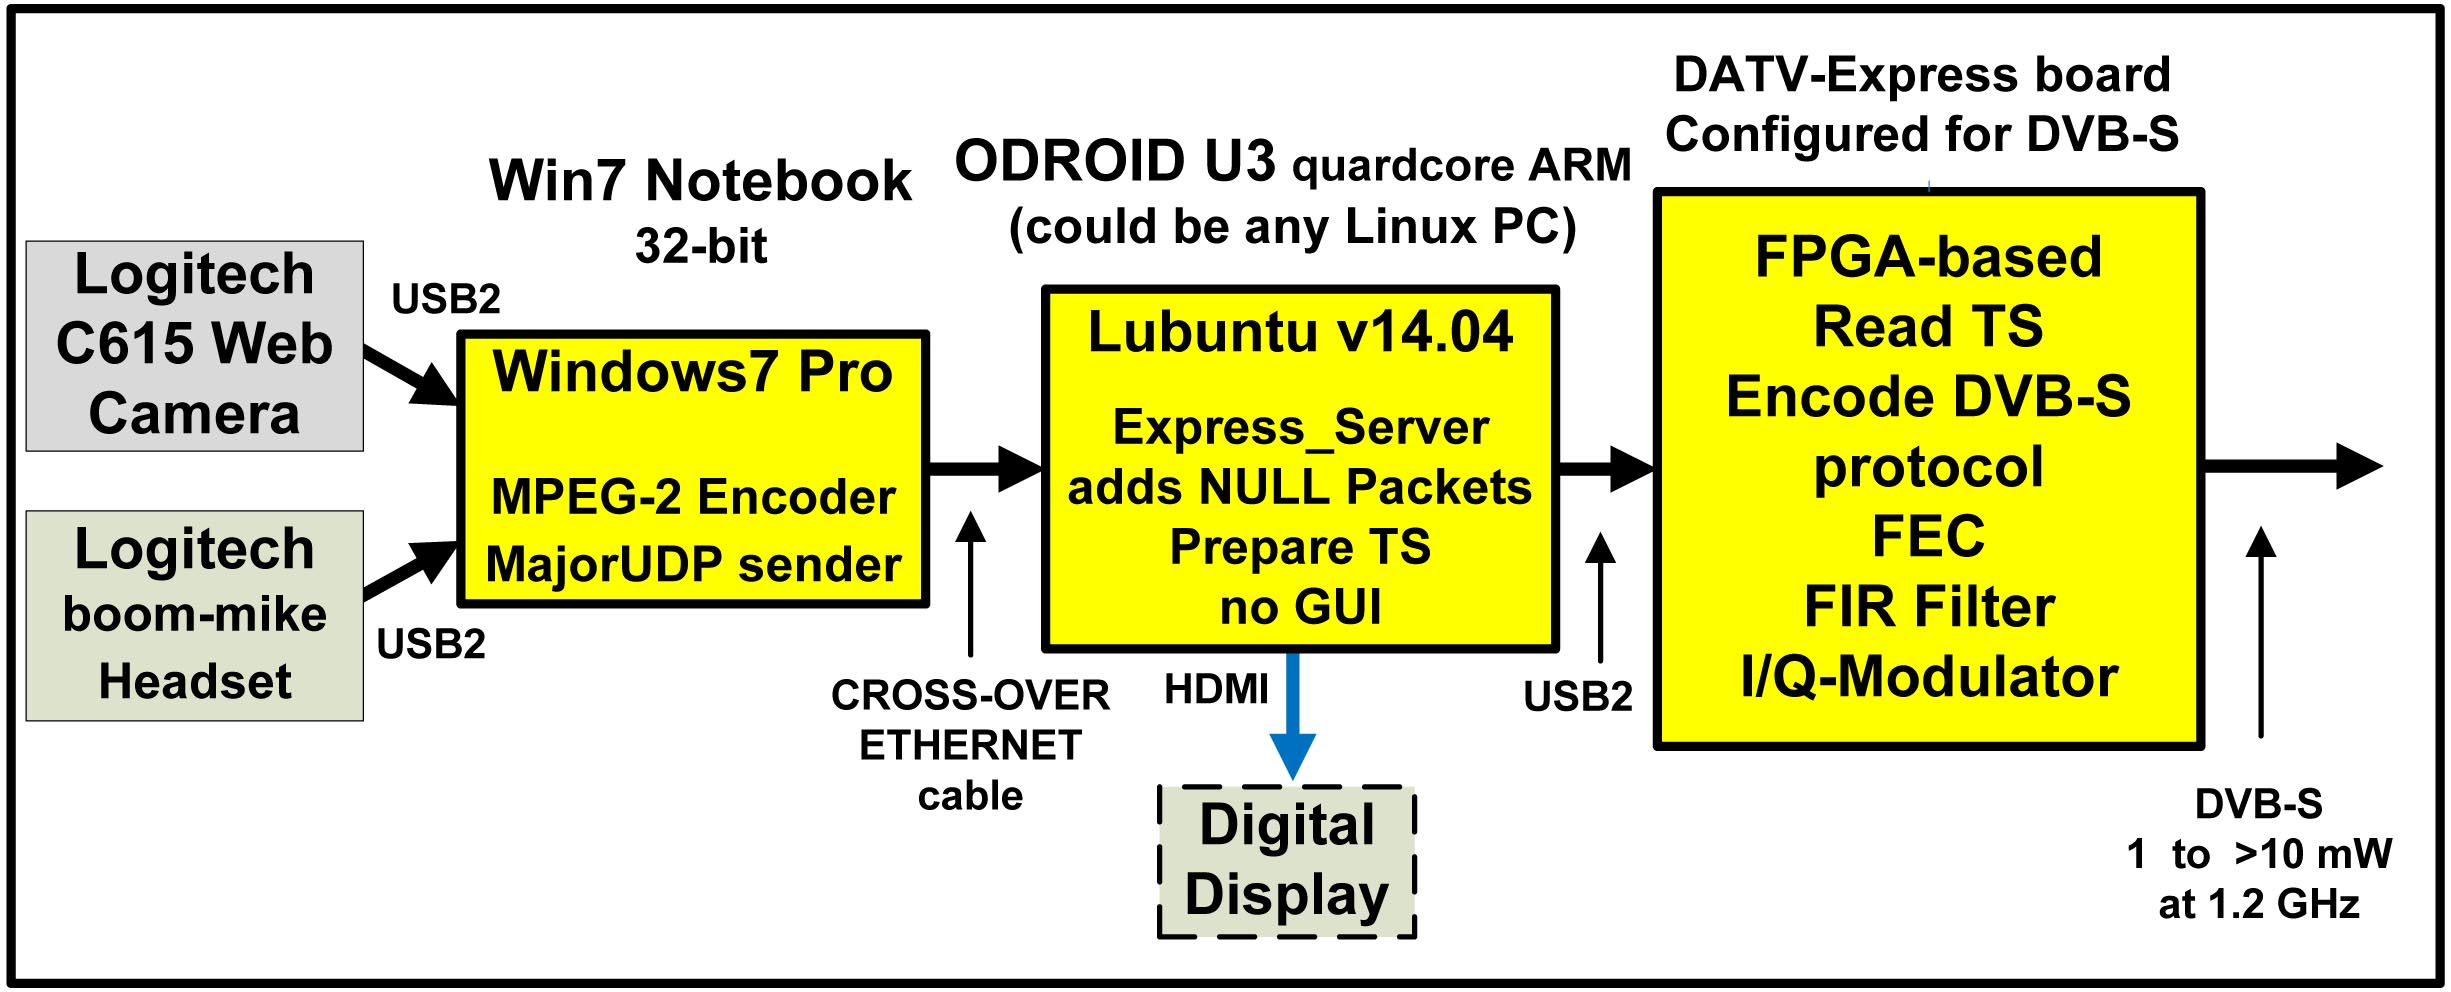 Datv Express Project July Update Report Batc Forum Mpeg 1 Block Diagram Figure Shows A For Testing The Server Software Logitech Web Camera Is Connected To Windows Pc That At First Was Running Vmix